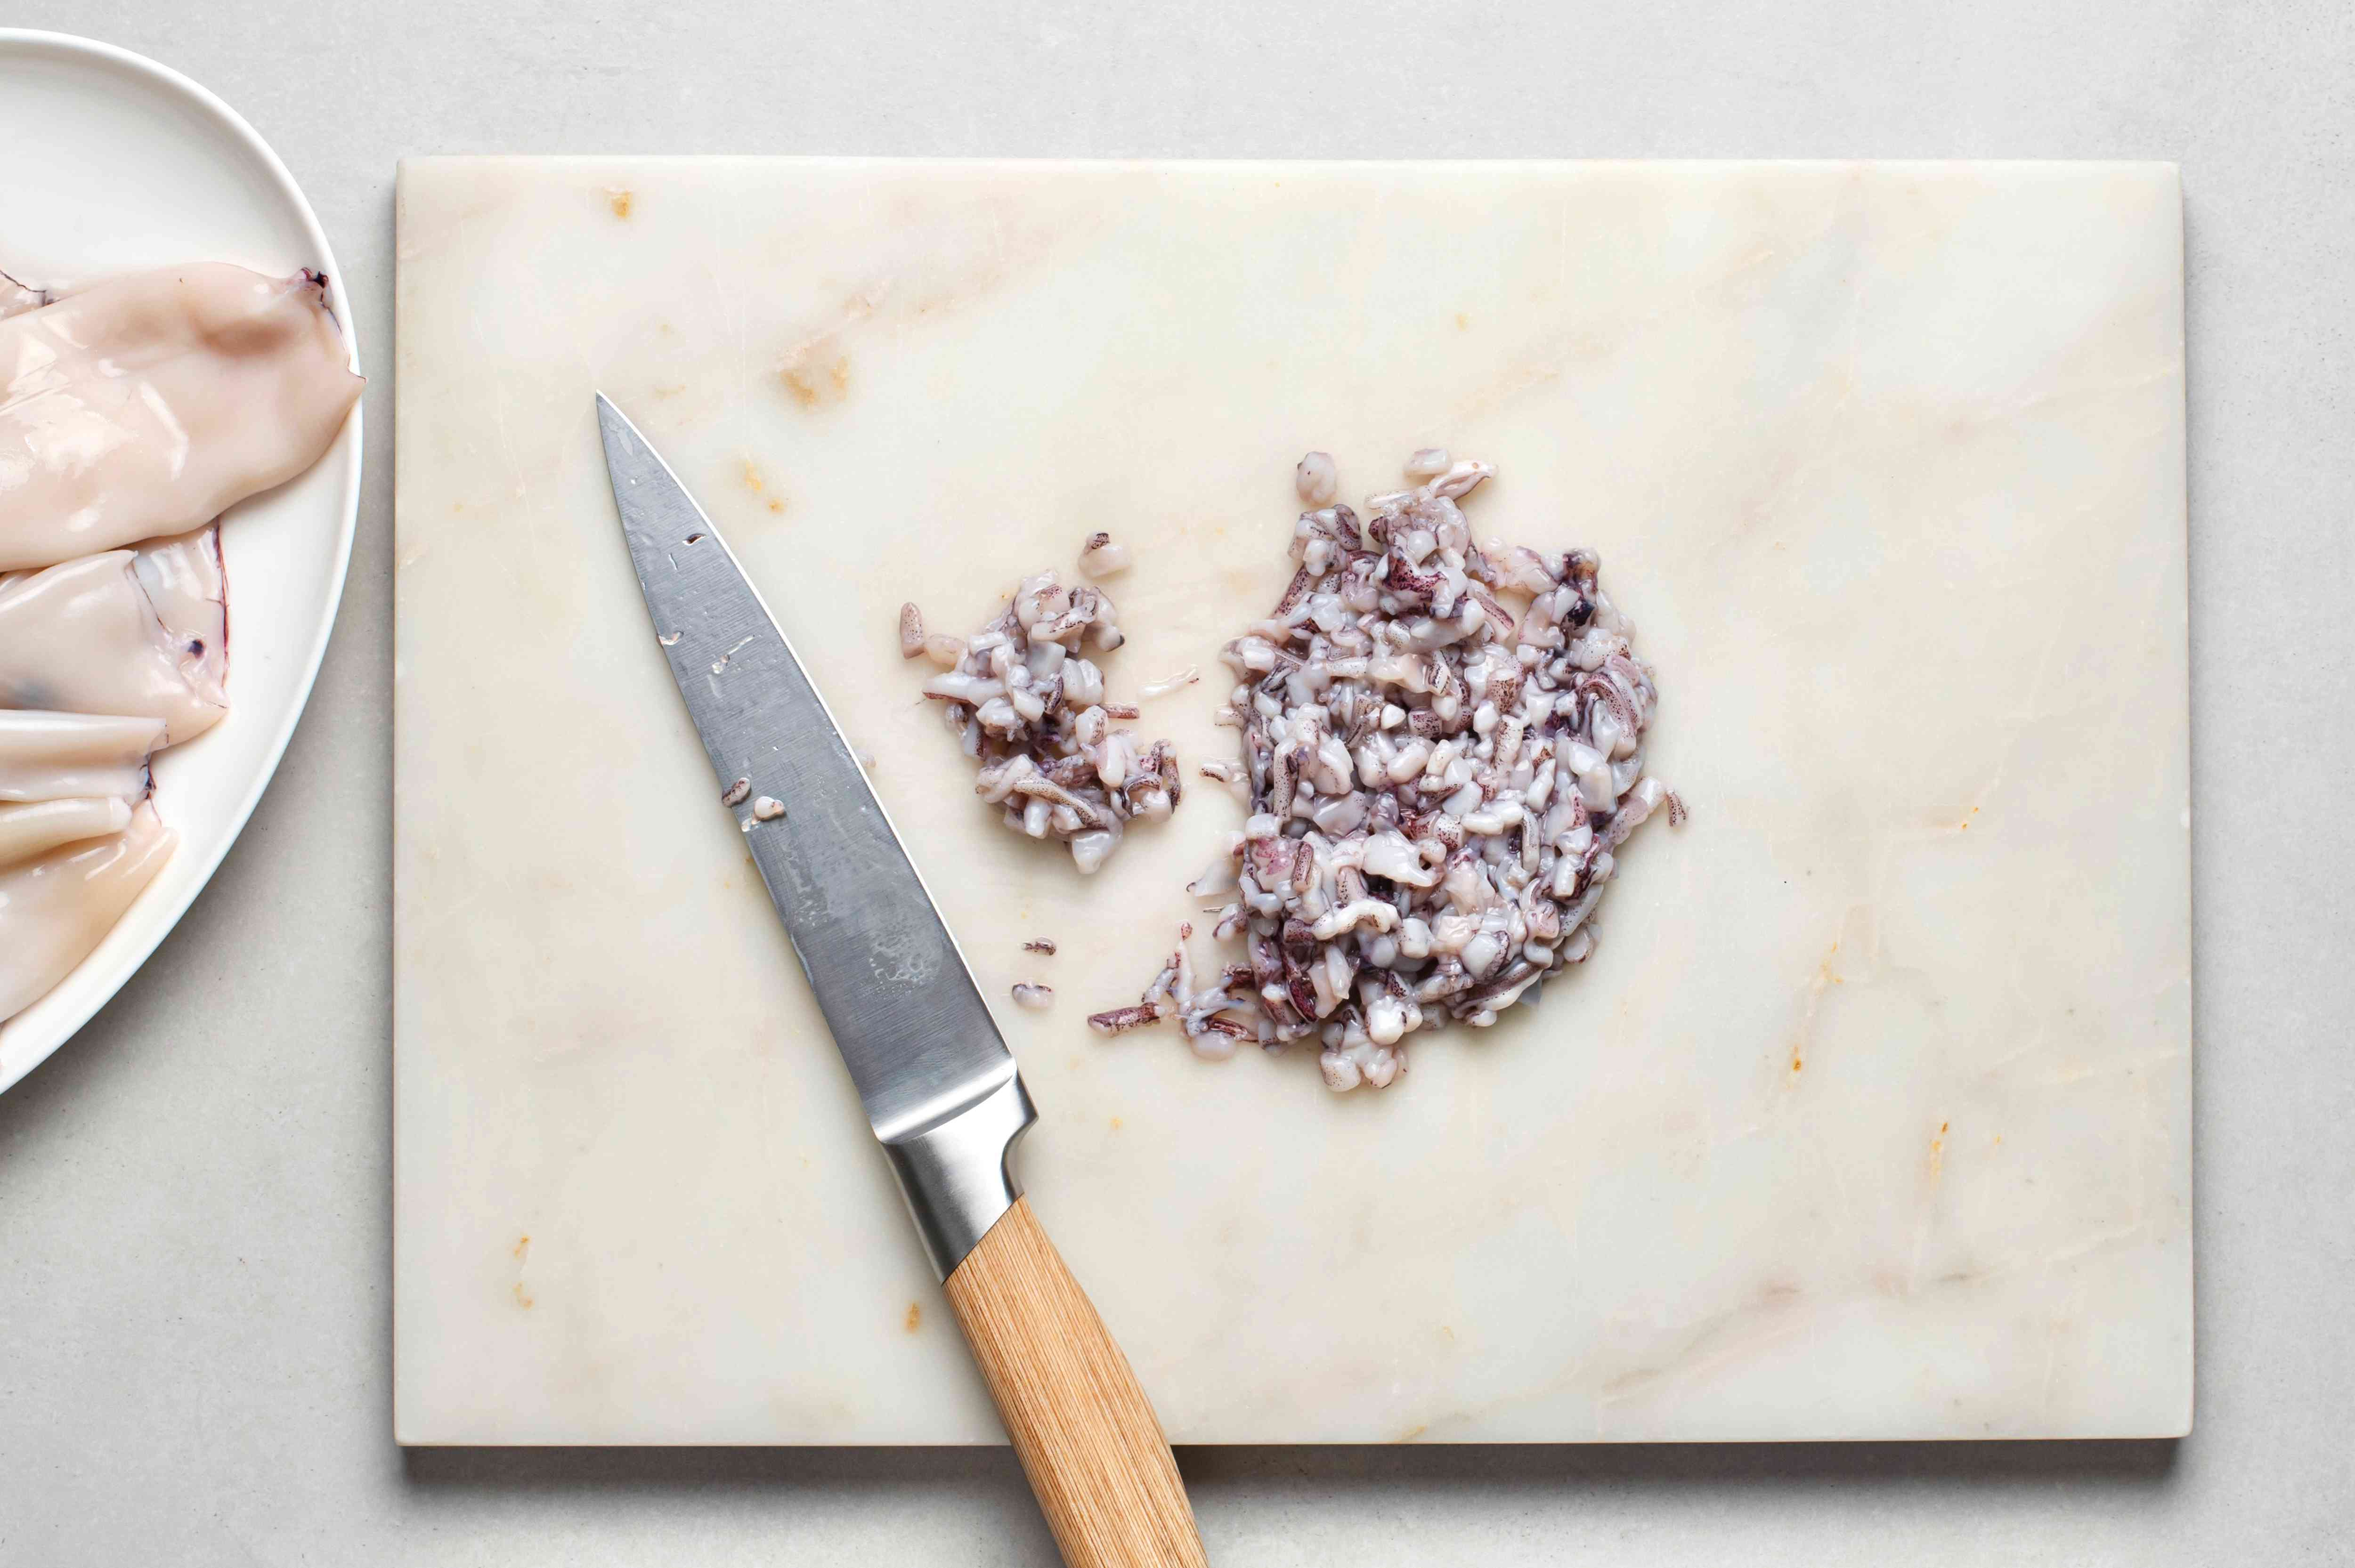 A cutting board with chopped squid tentacles